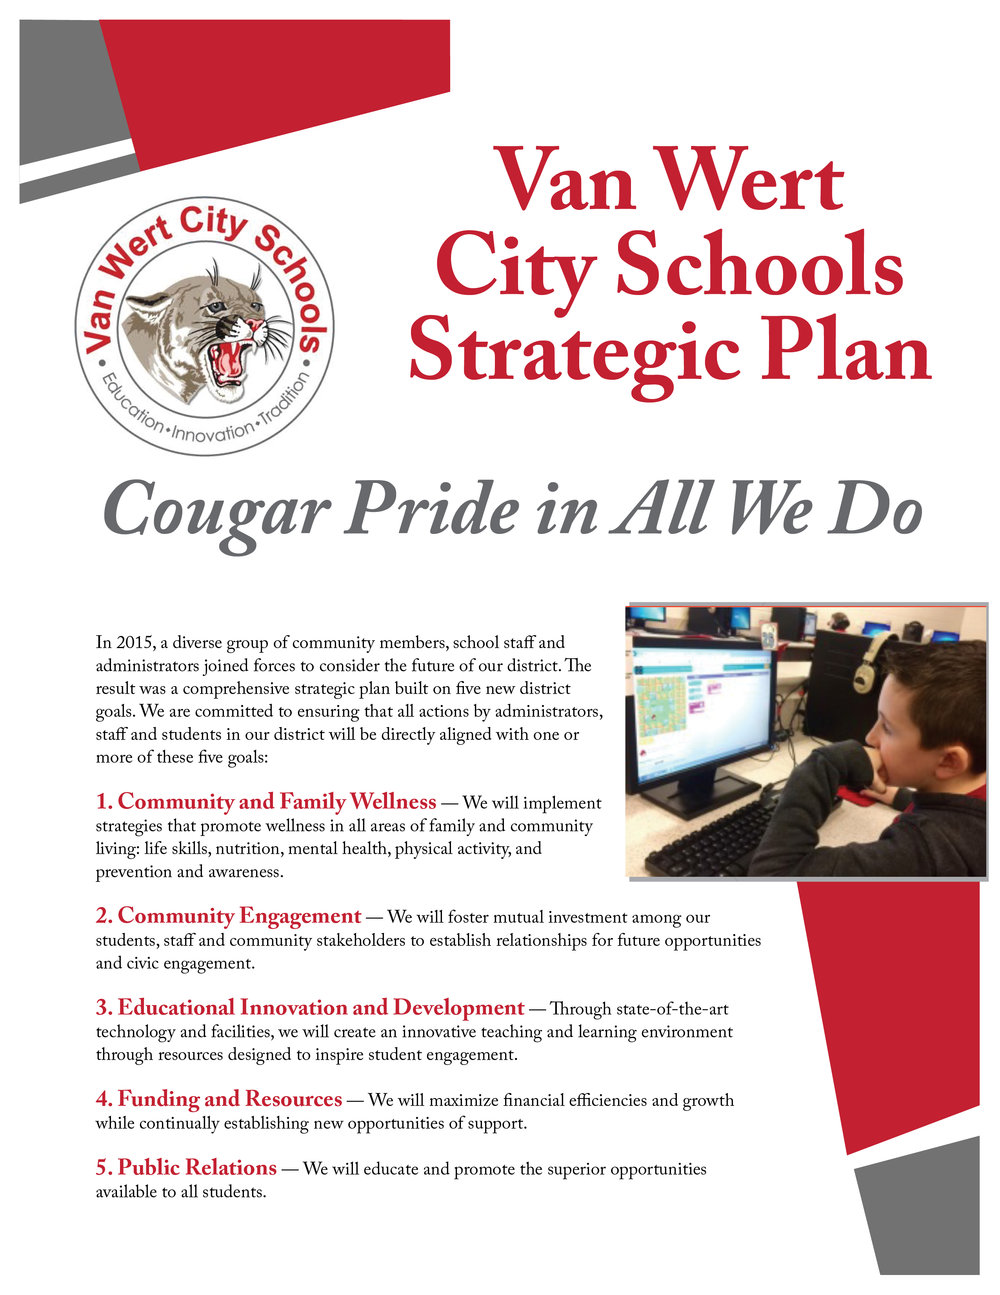 Page one of the Van Wert City Schools' Strategic Plan contains the district's five goals: community and family wellness, community engagement, educational innovation and development, funding and resources, and public relations.